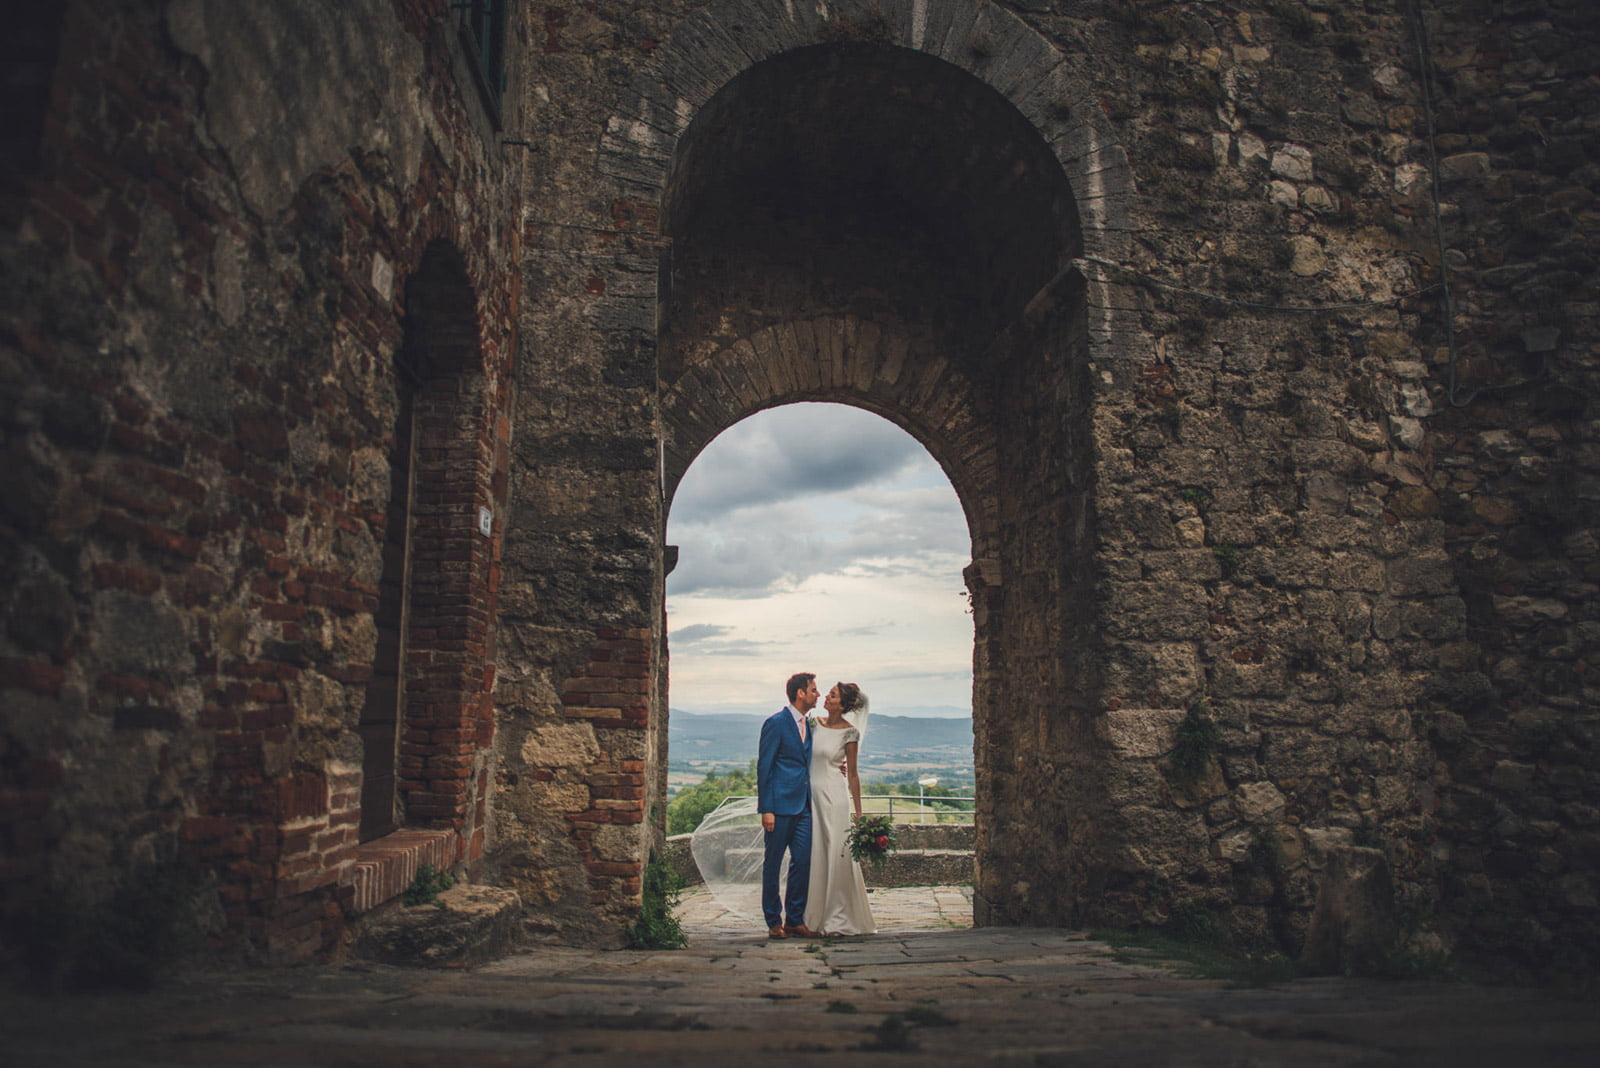 072-wedding-tuscany-san-galgano-federico-pannacci-photographer